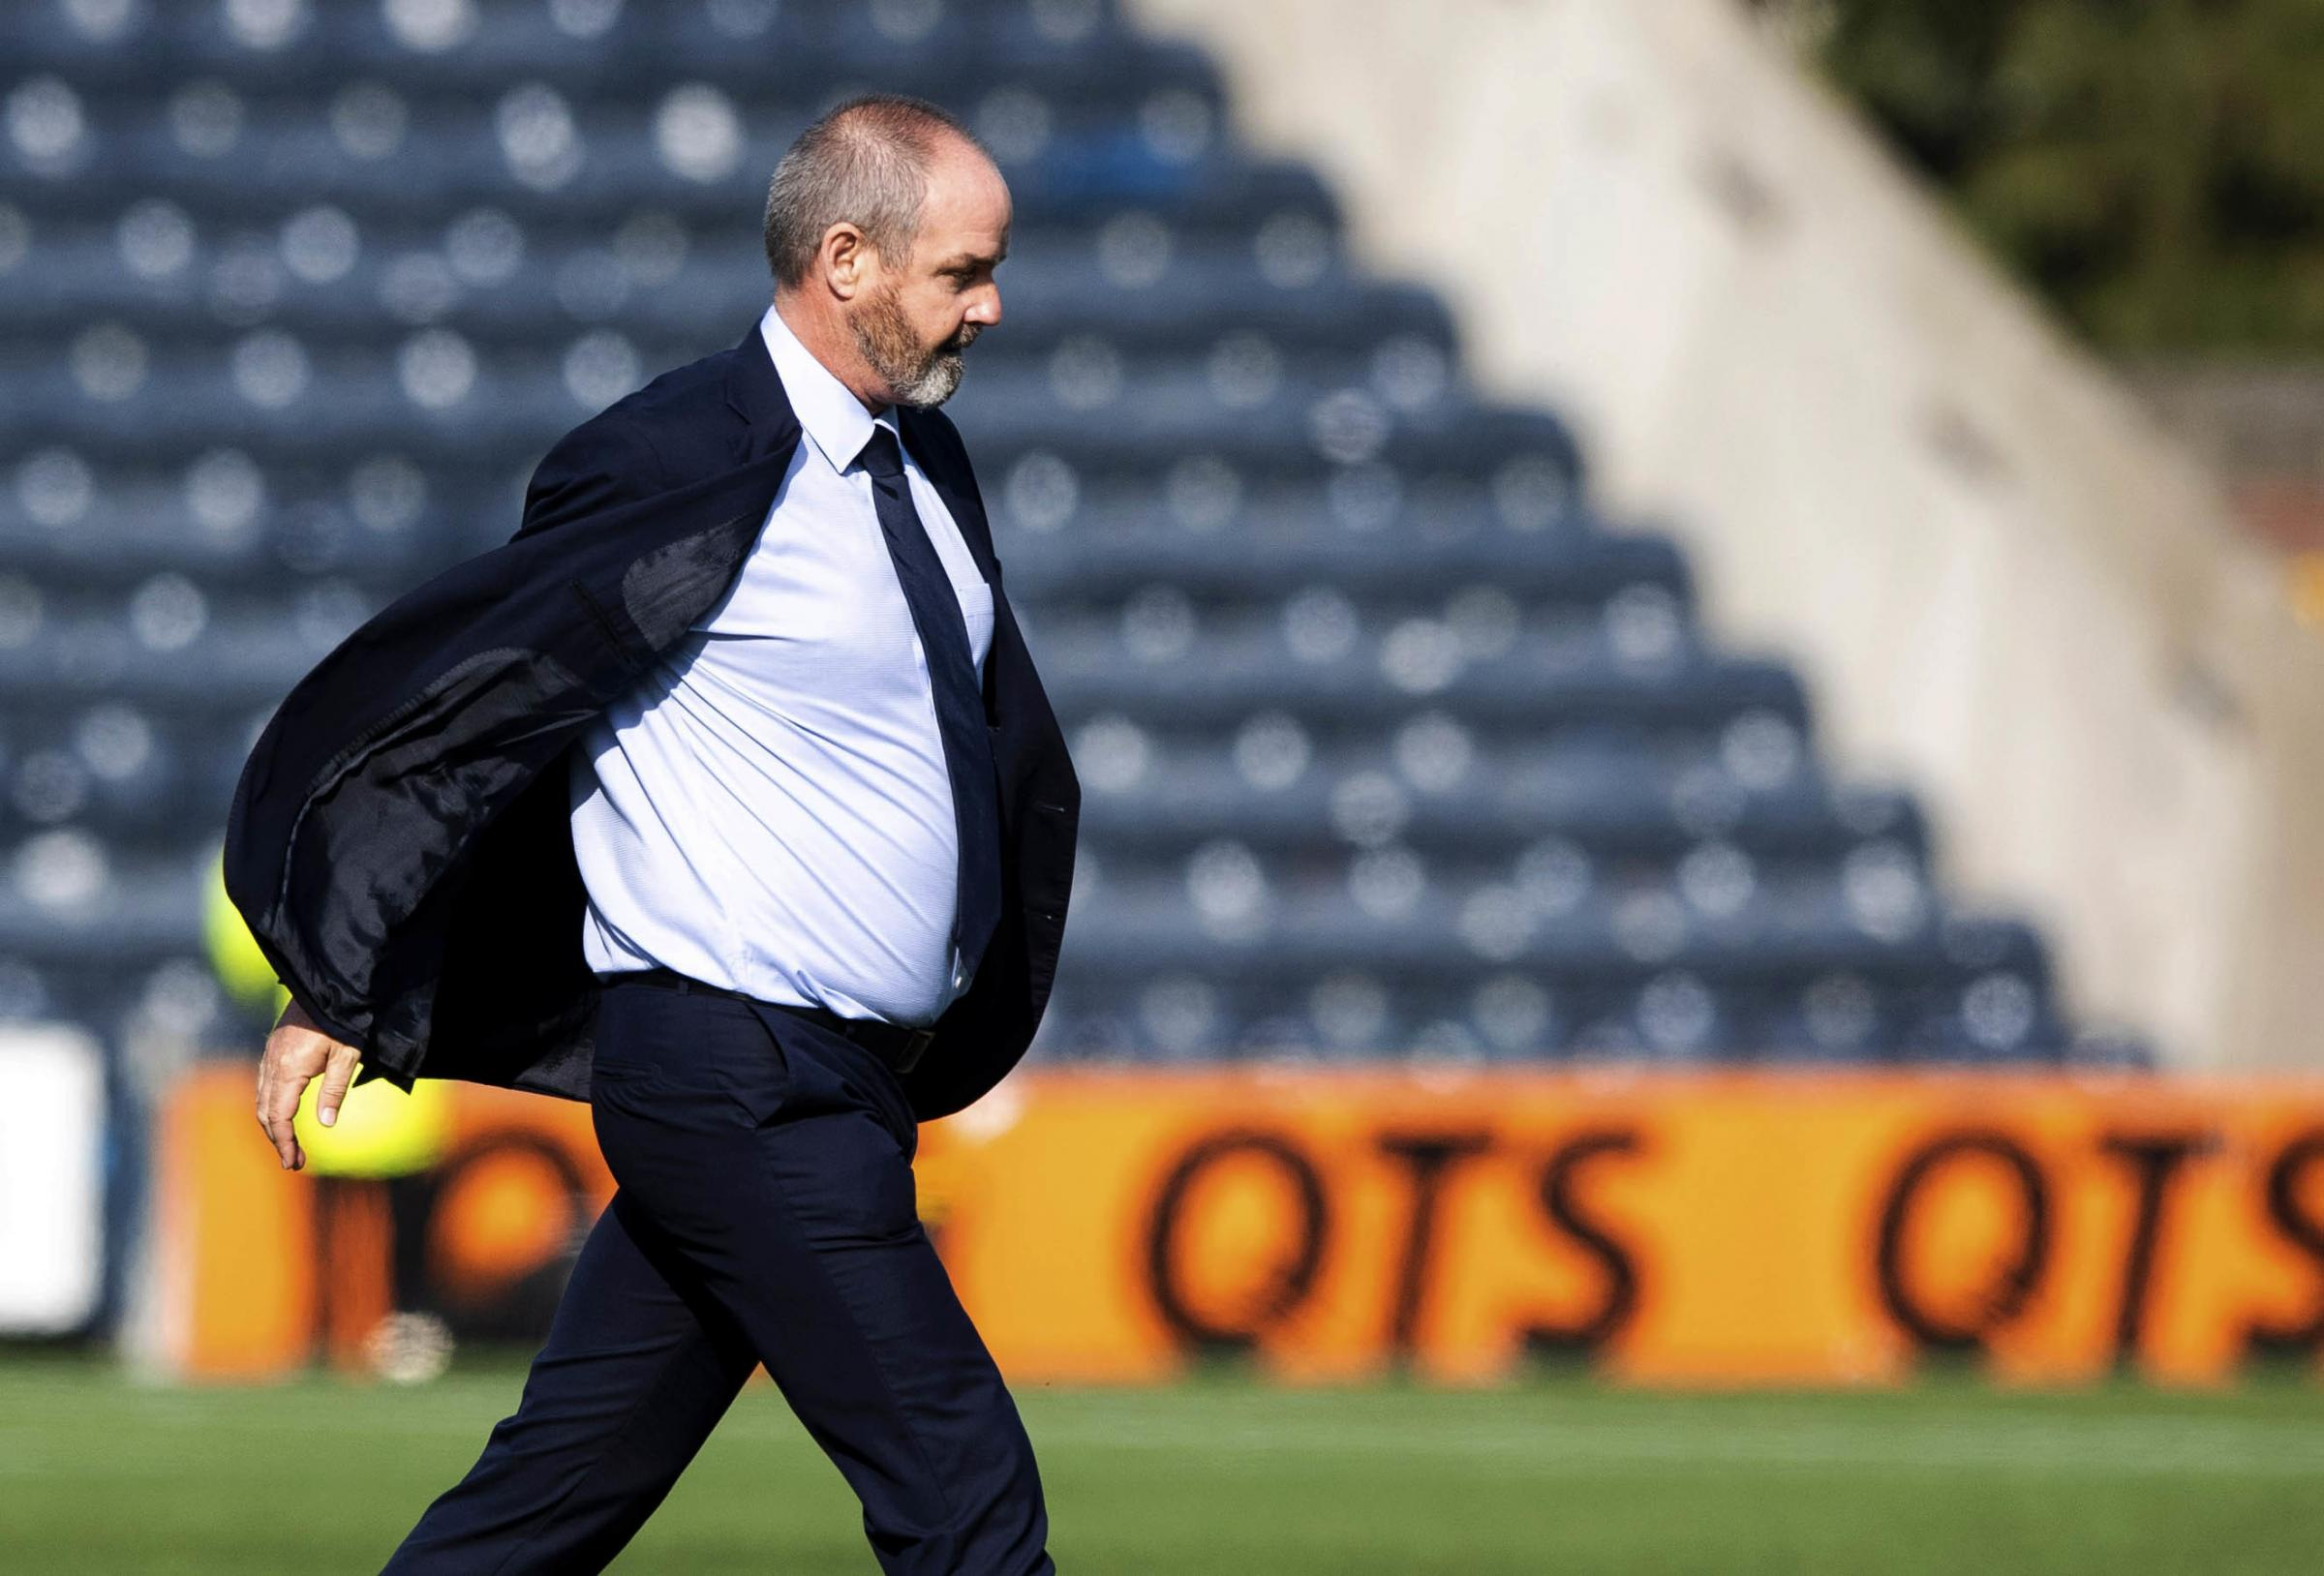 Steve Clarke marches onto the Rugby Park pitch to confront referee Steven McLean..